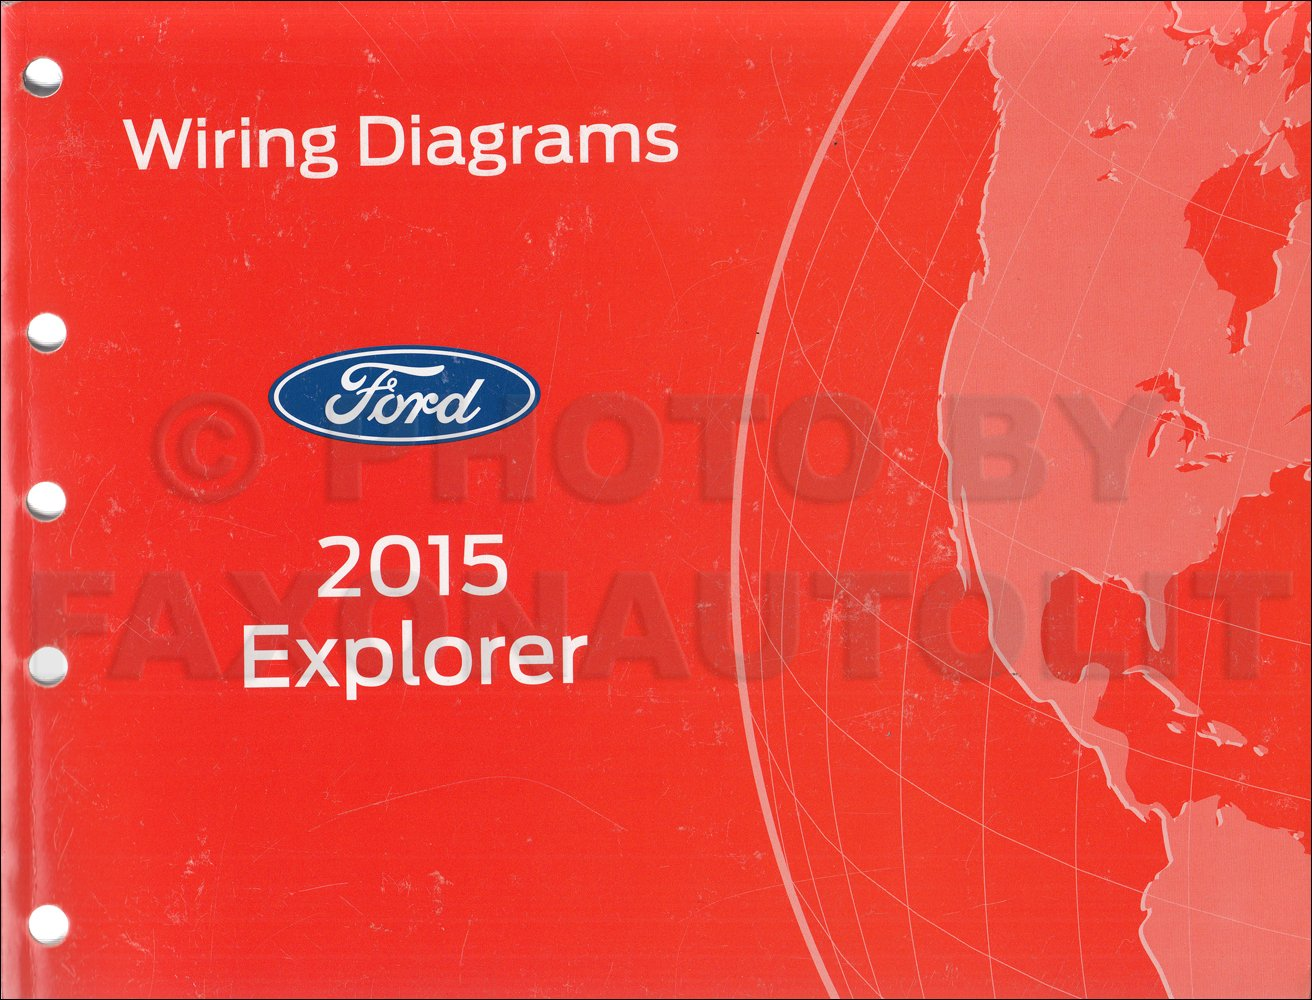 ford explorer wire diagram 2015 ford explorer wiring diagram manual original ford amazon ford explorer wiring diagram free 2015 ford explorer wiring diagram